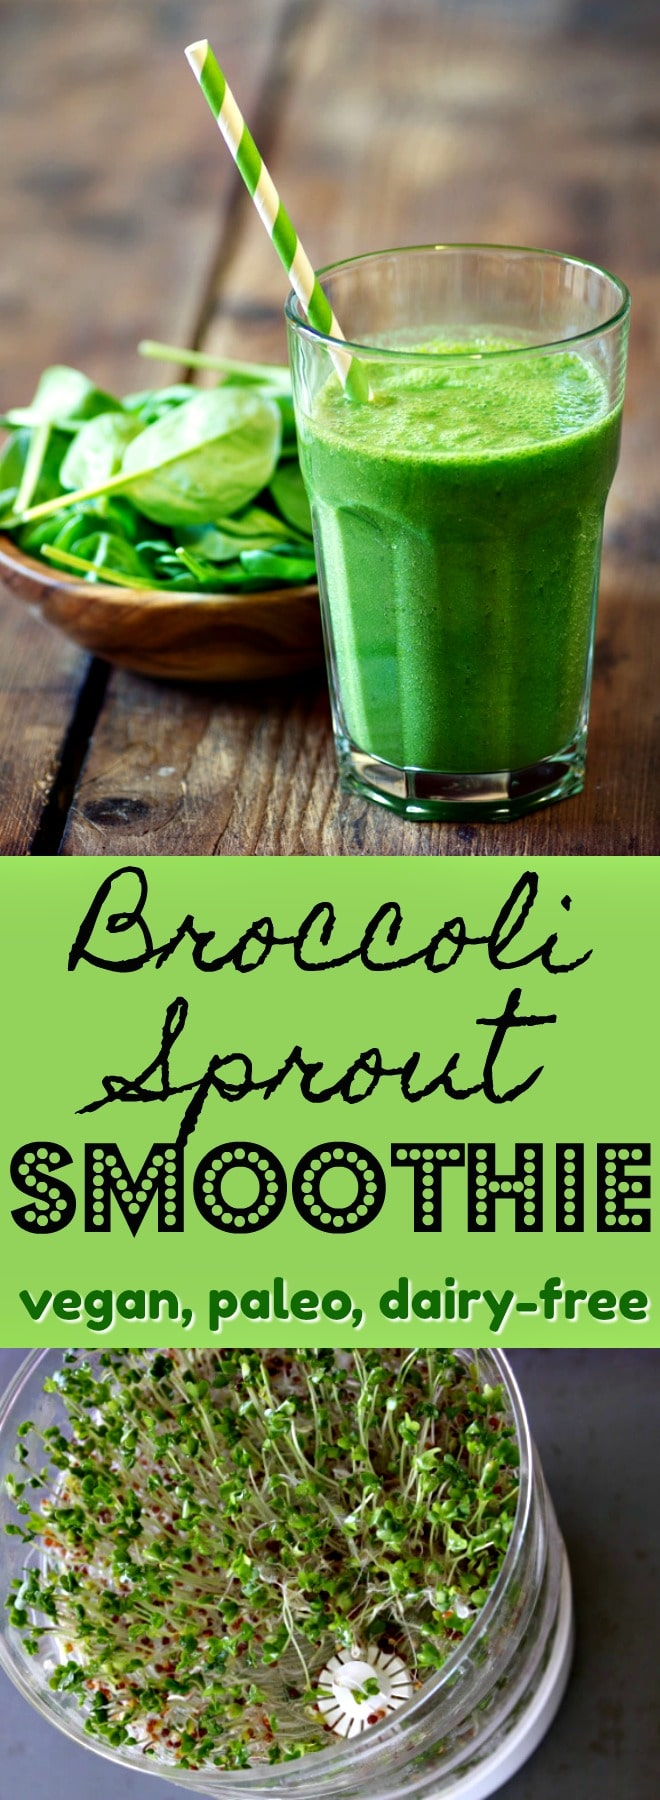 Broccoli sprouts in a smoothie is a quick and easy way to get this superfood into your diet. Frozen fruit helps mask the strong flavor as well, so it's a double-win. | Vegan smoothie, paleo green smoothie, broccoli sprout smoothie, dairy-free smoothie